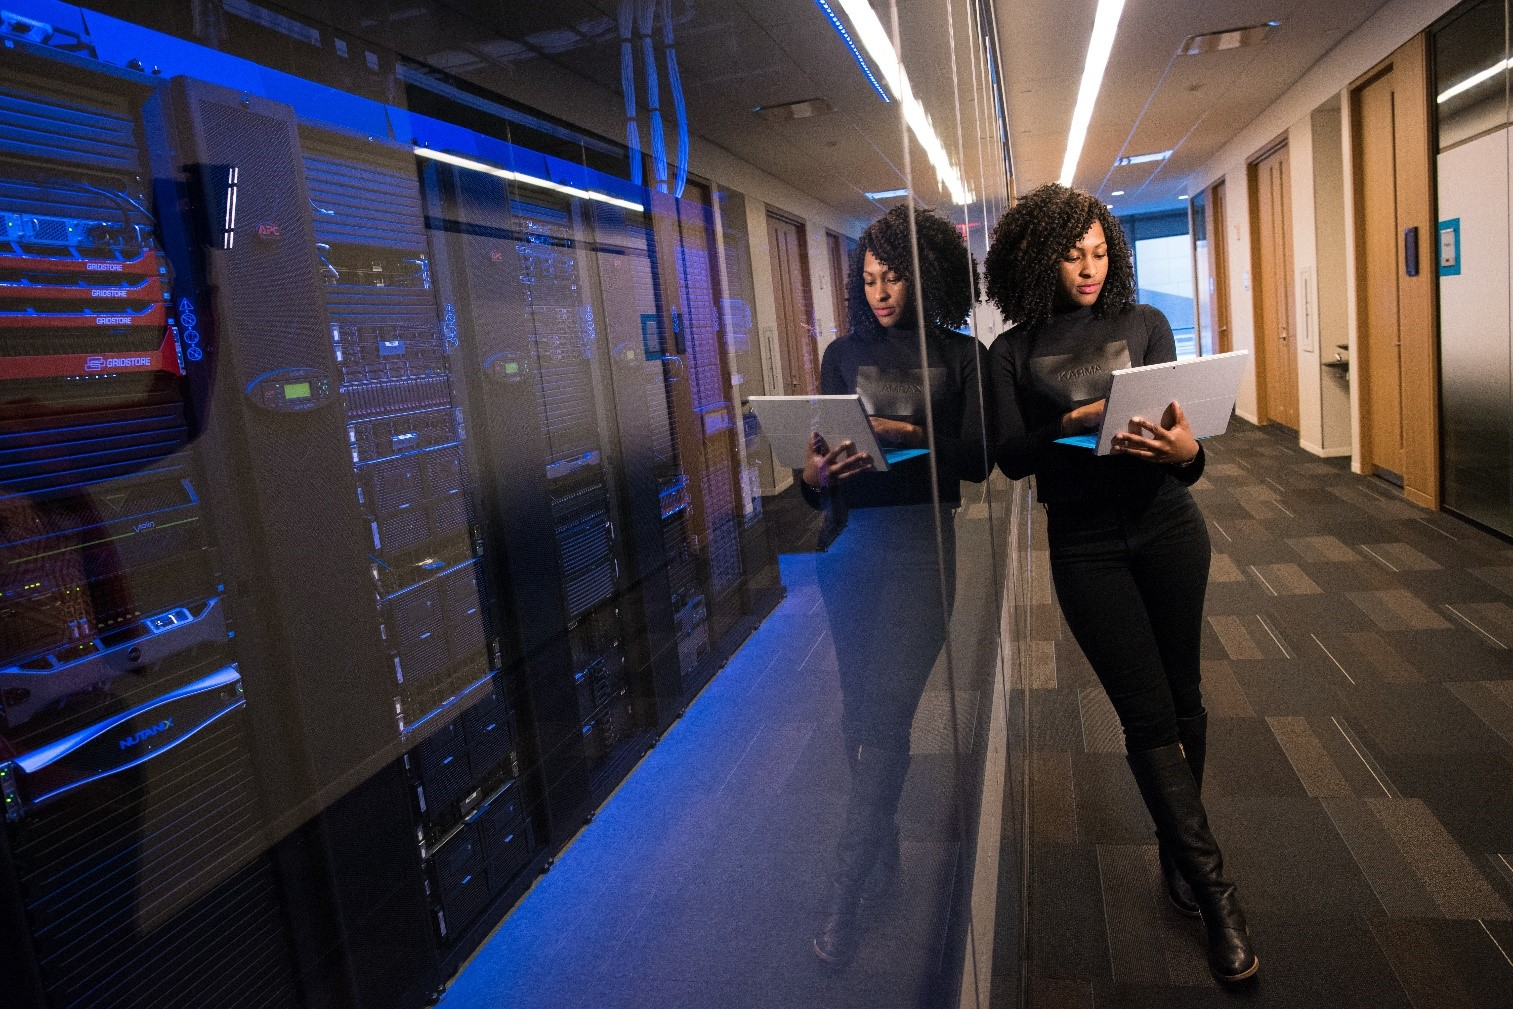 Woman on laptop standing in front of server wall